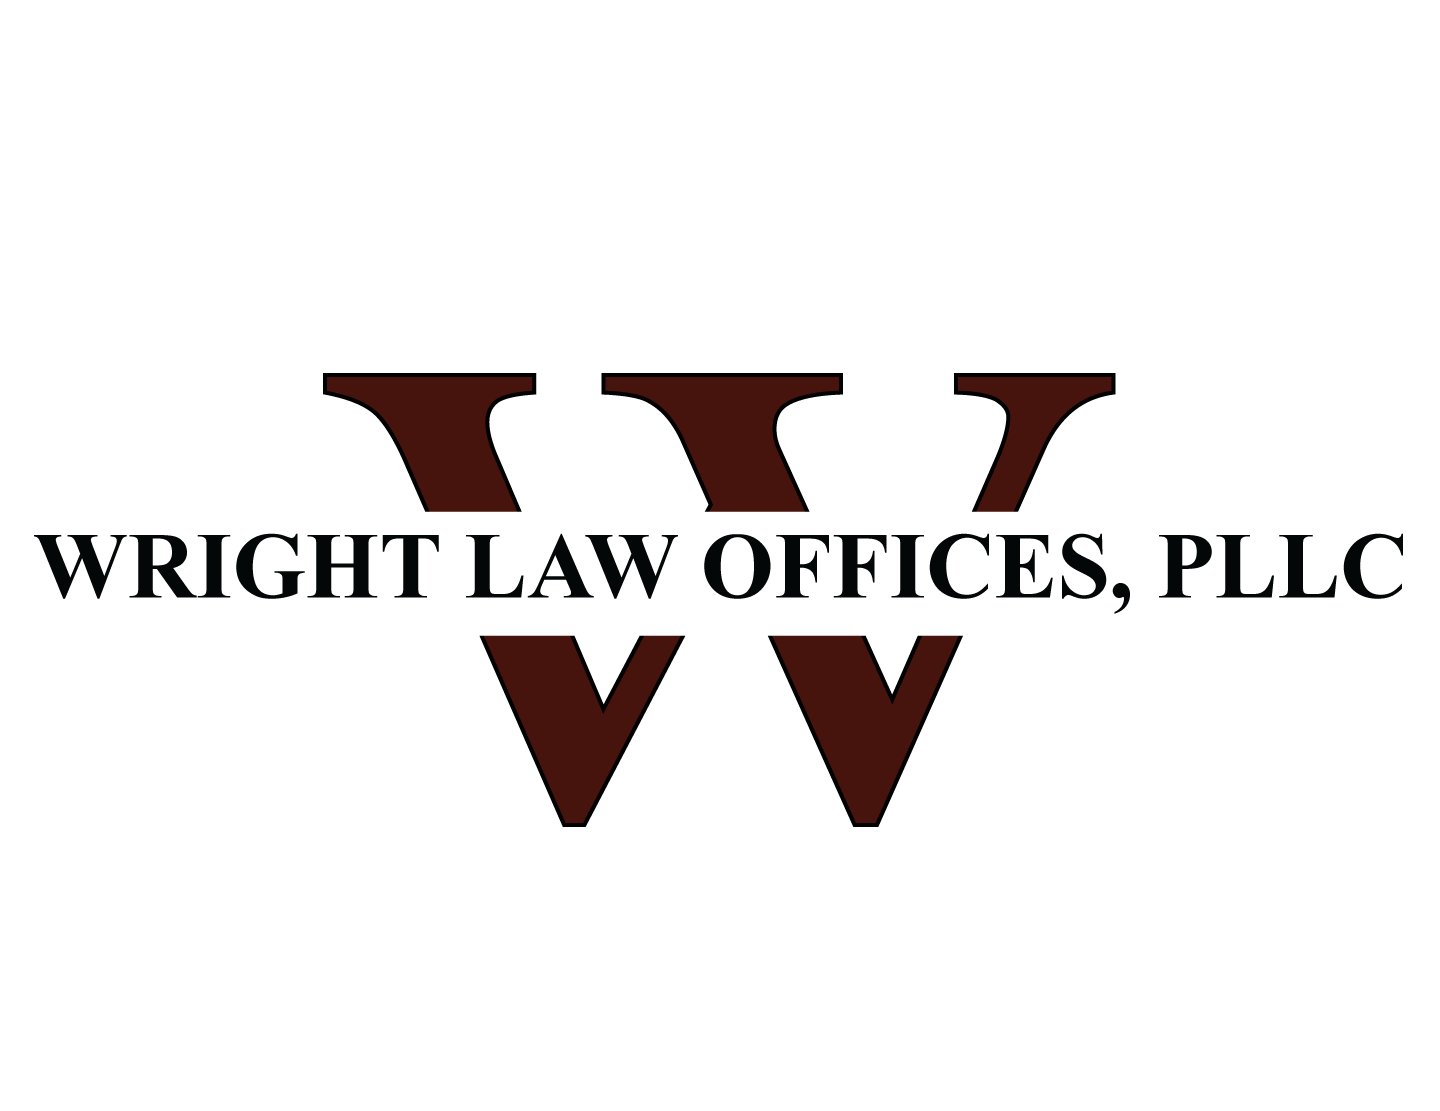 Wright Law Offices, PLLC